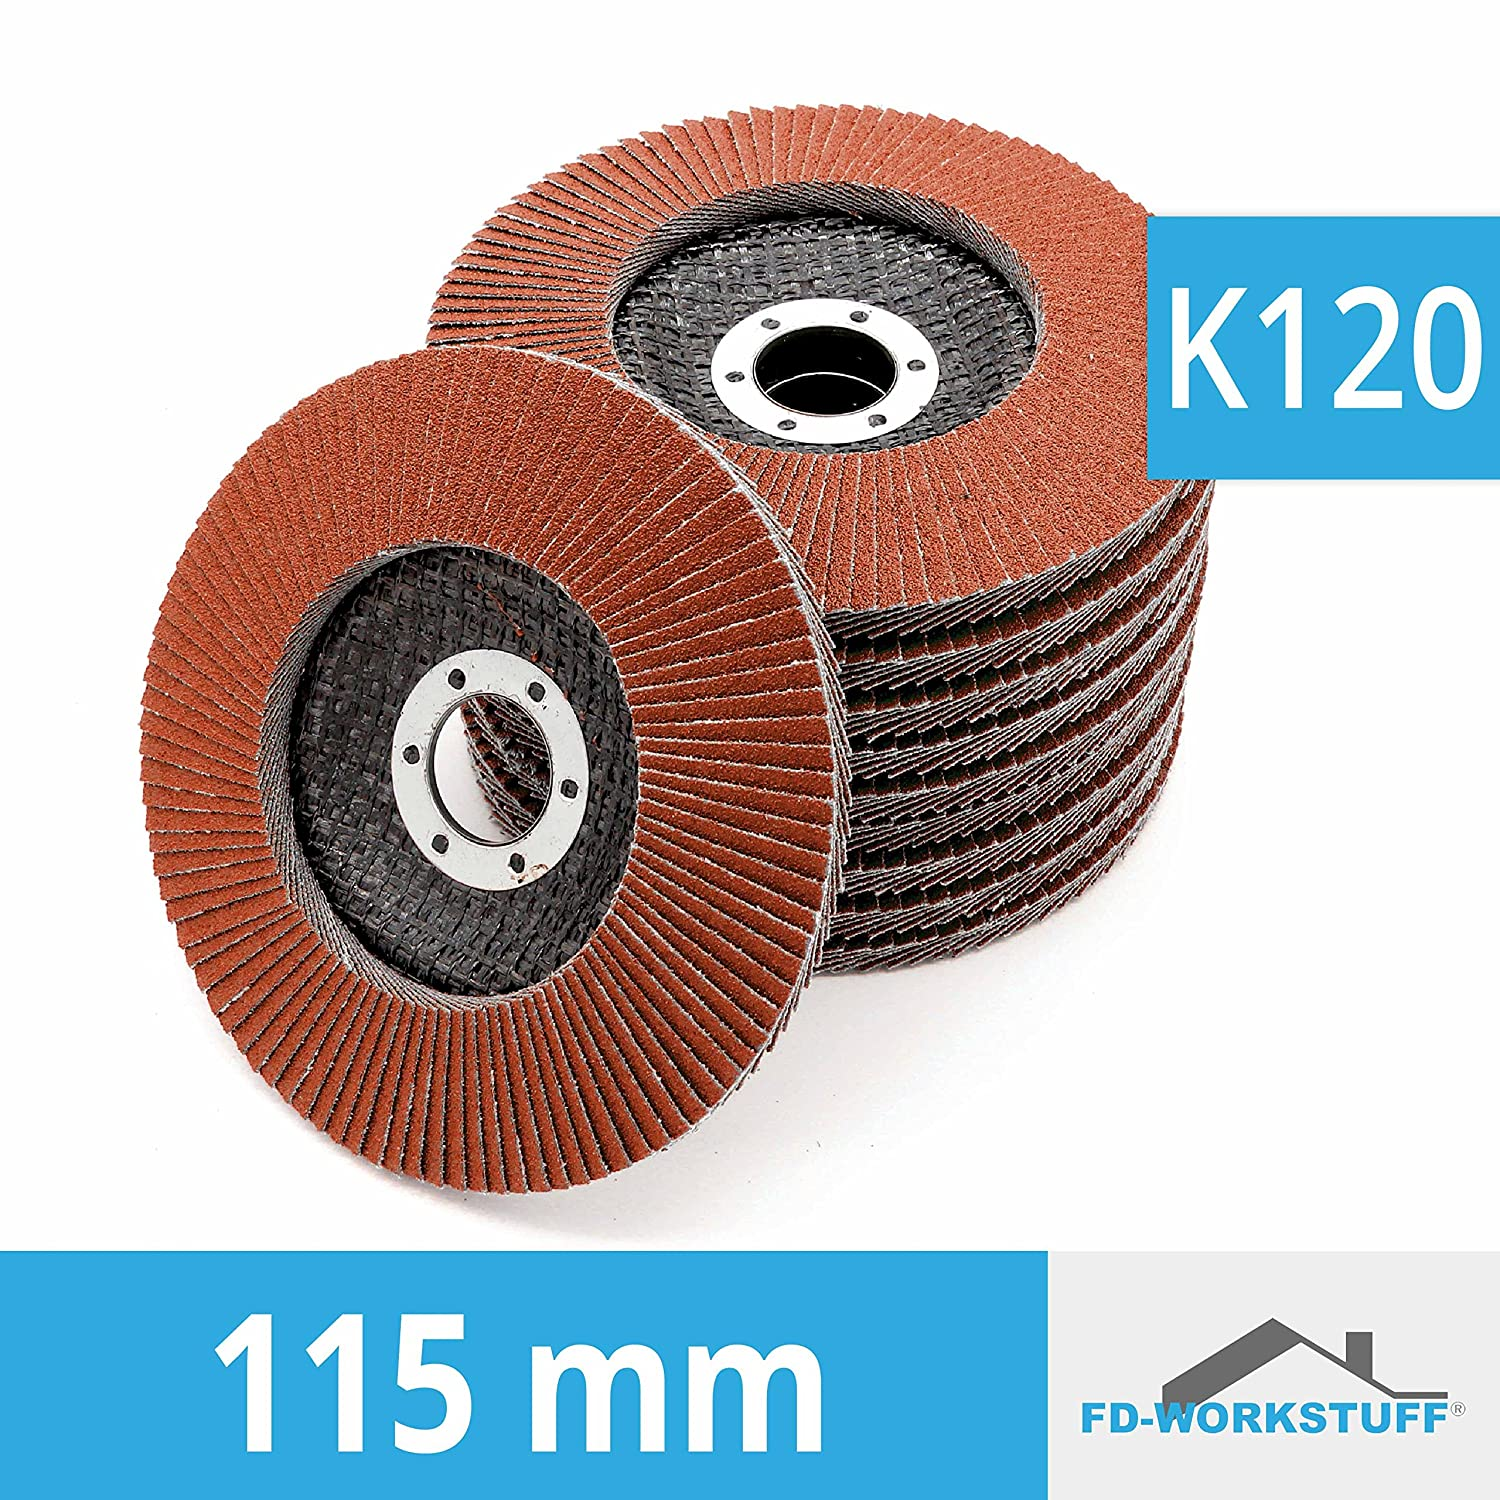 Pack of 10 Flapdiscs Brown 115mm P120 FD-Workstuff